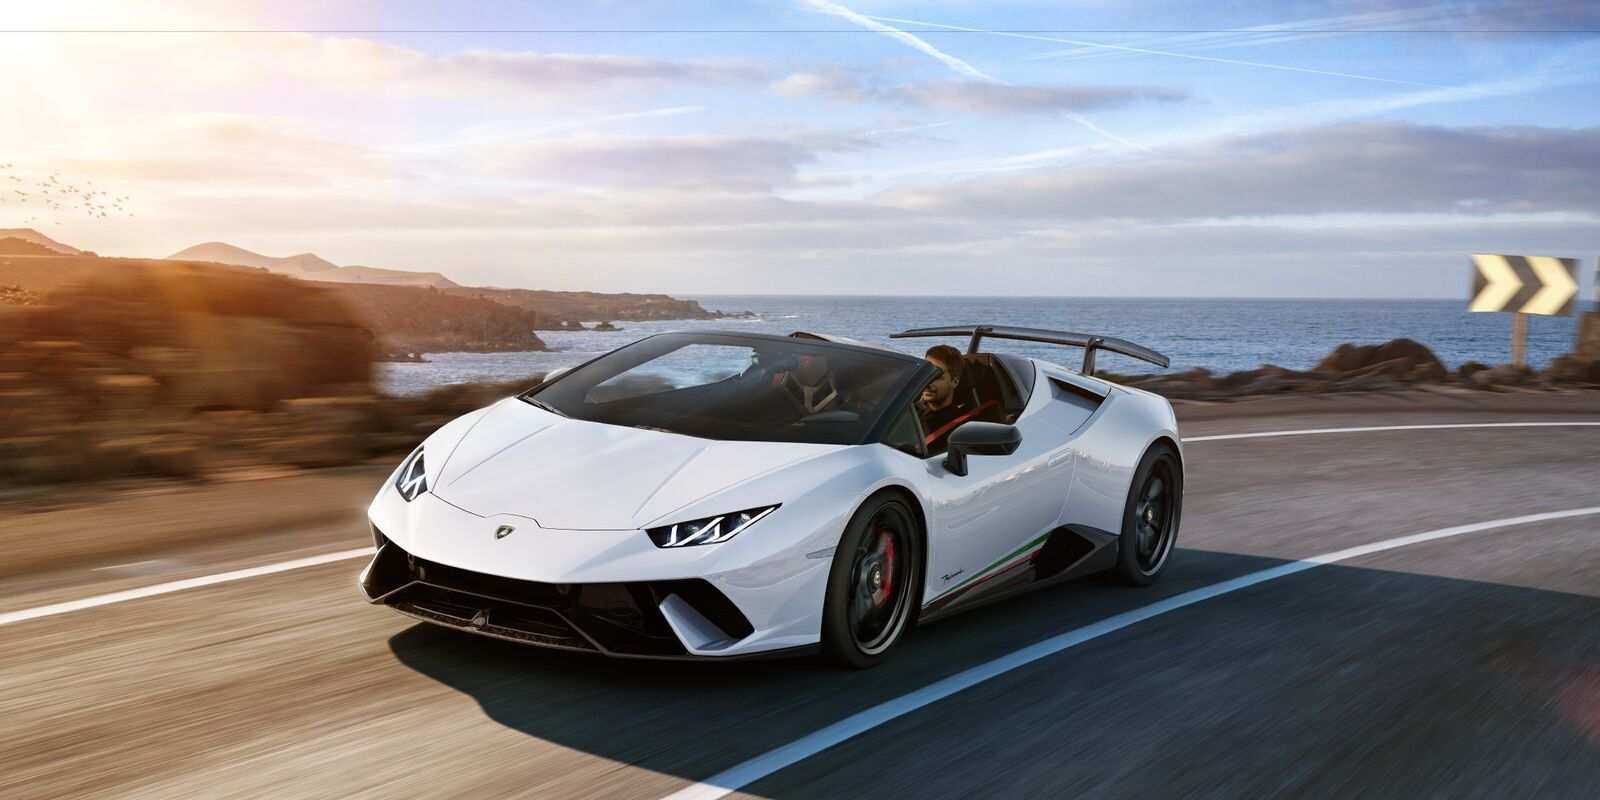 70 All New 2019 Lamborghini Horsepower Style with 2019 Lamborghini Horsepower